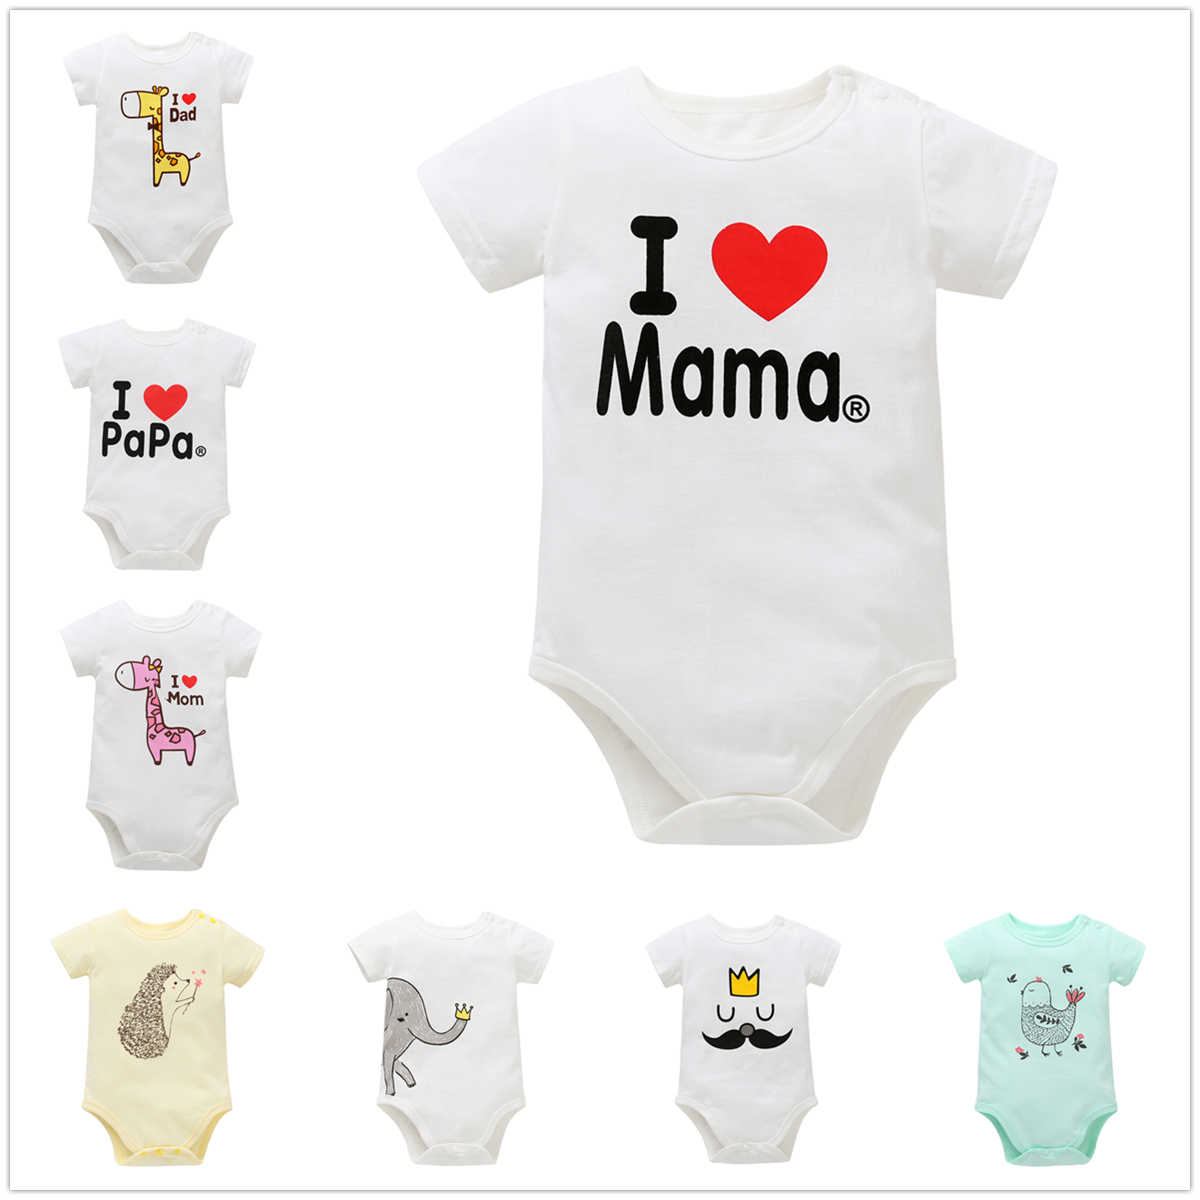 0-12M Newborn Baby Boy Romper Toddler Girl Rompers Clothes White Cotton Clothing Summer Unisex Infant Jumpsuit Cartoon Playsuit